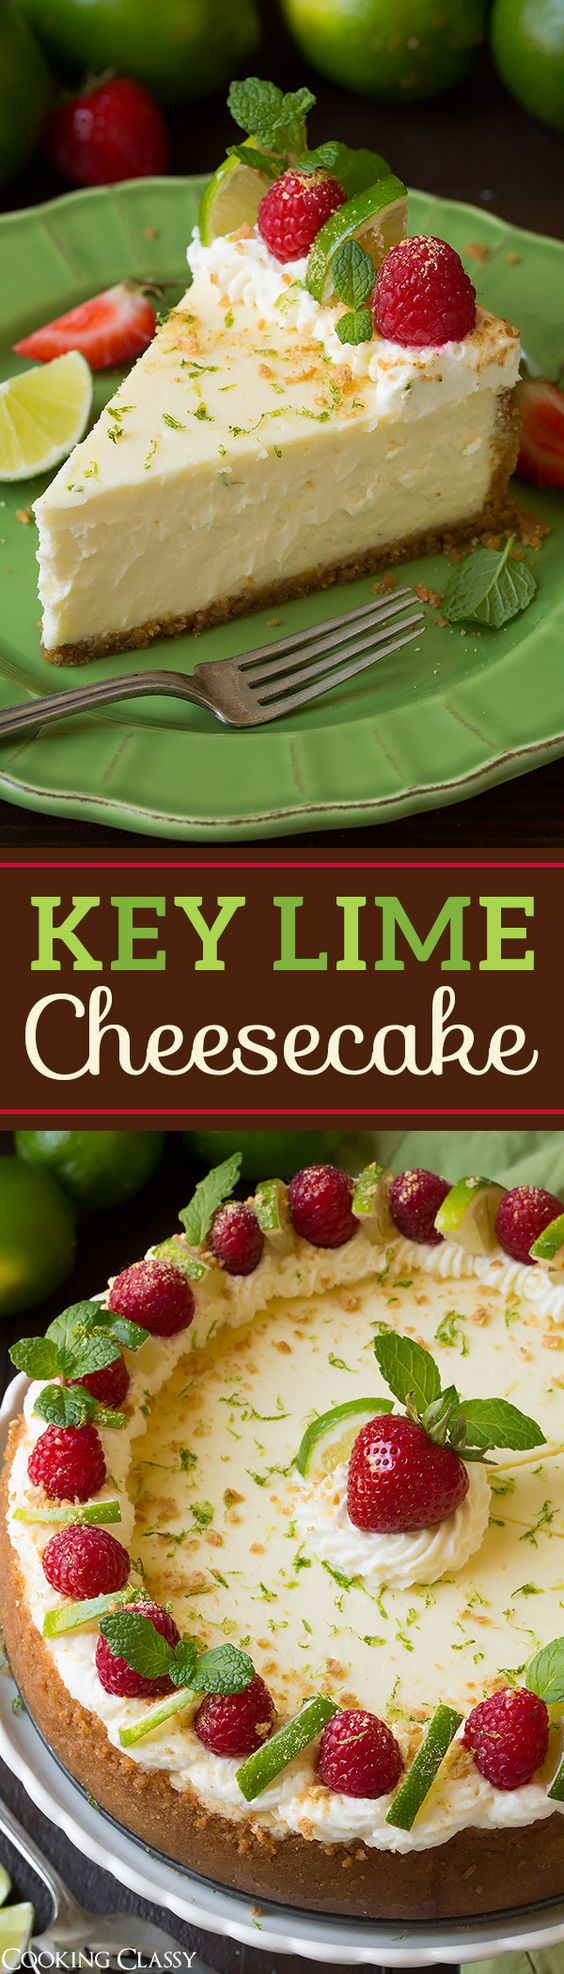 Key Lime Cheesecake Recipe via Cooking Classy - the perfect summer cheesecake! This is TO DIE FOR!!